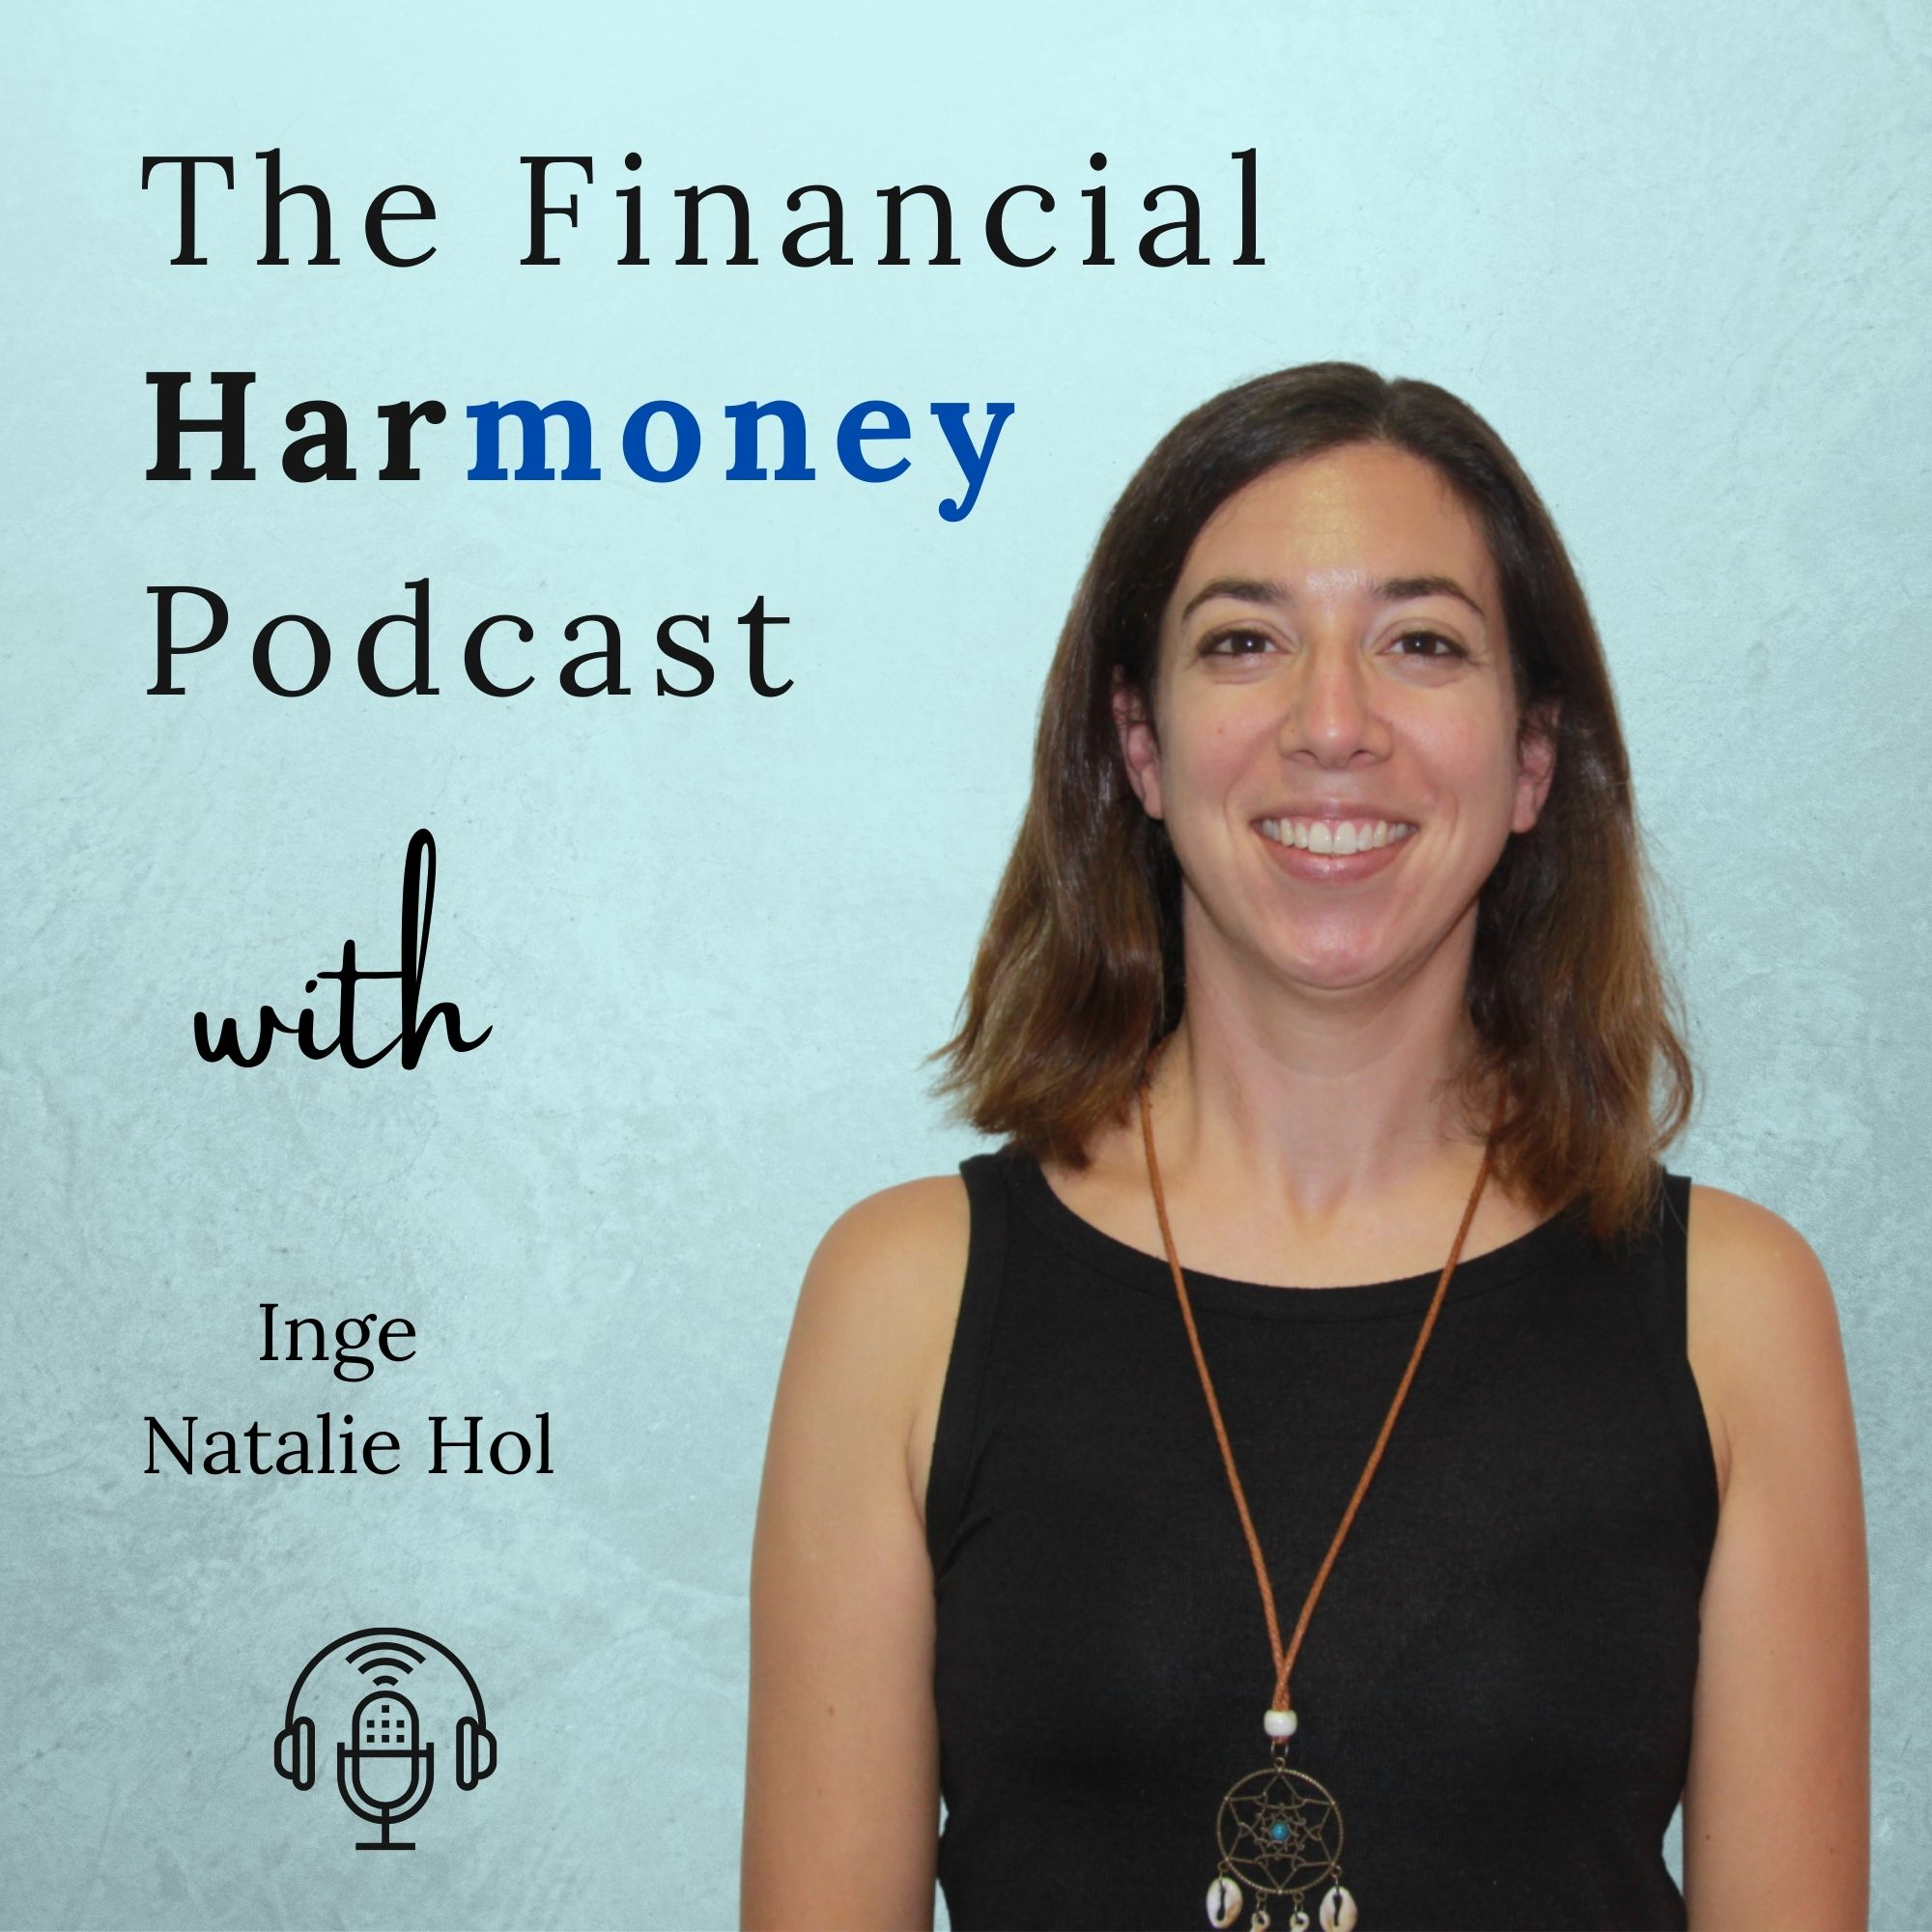 The Financial Harmoney Podcast